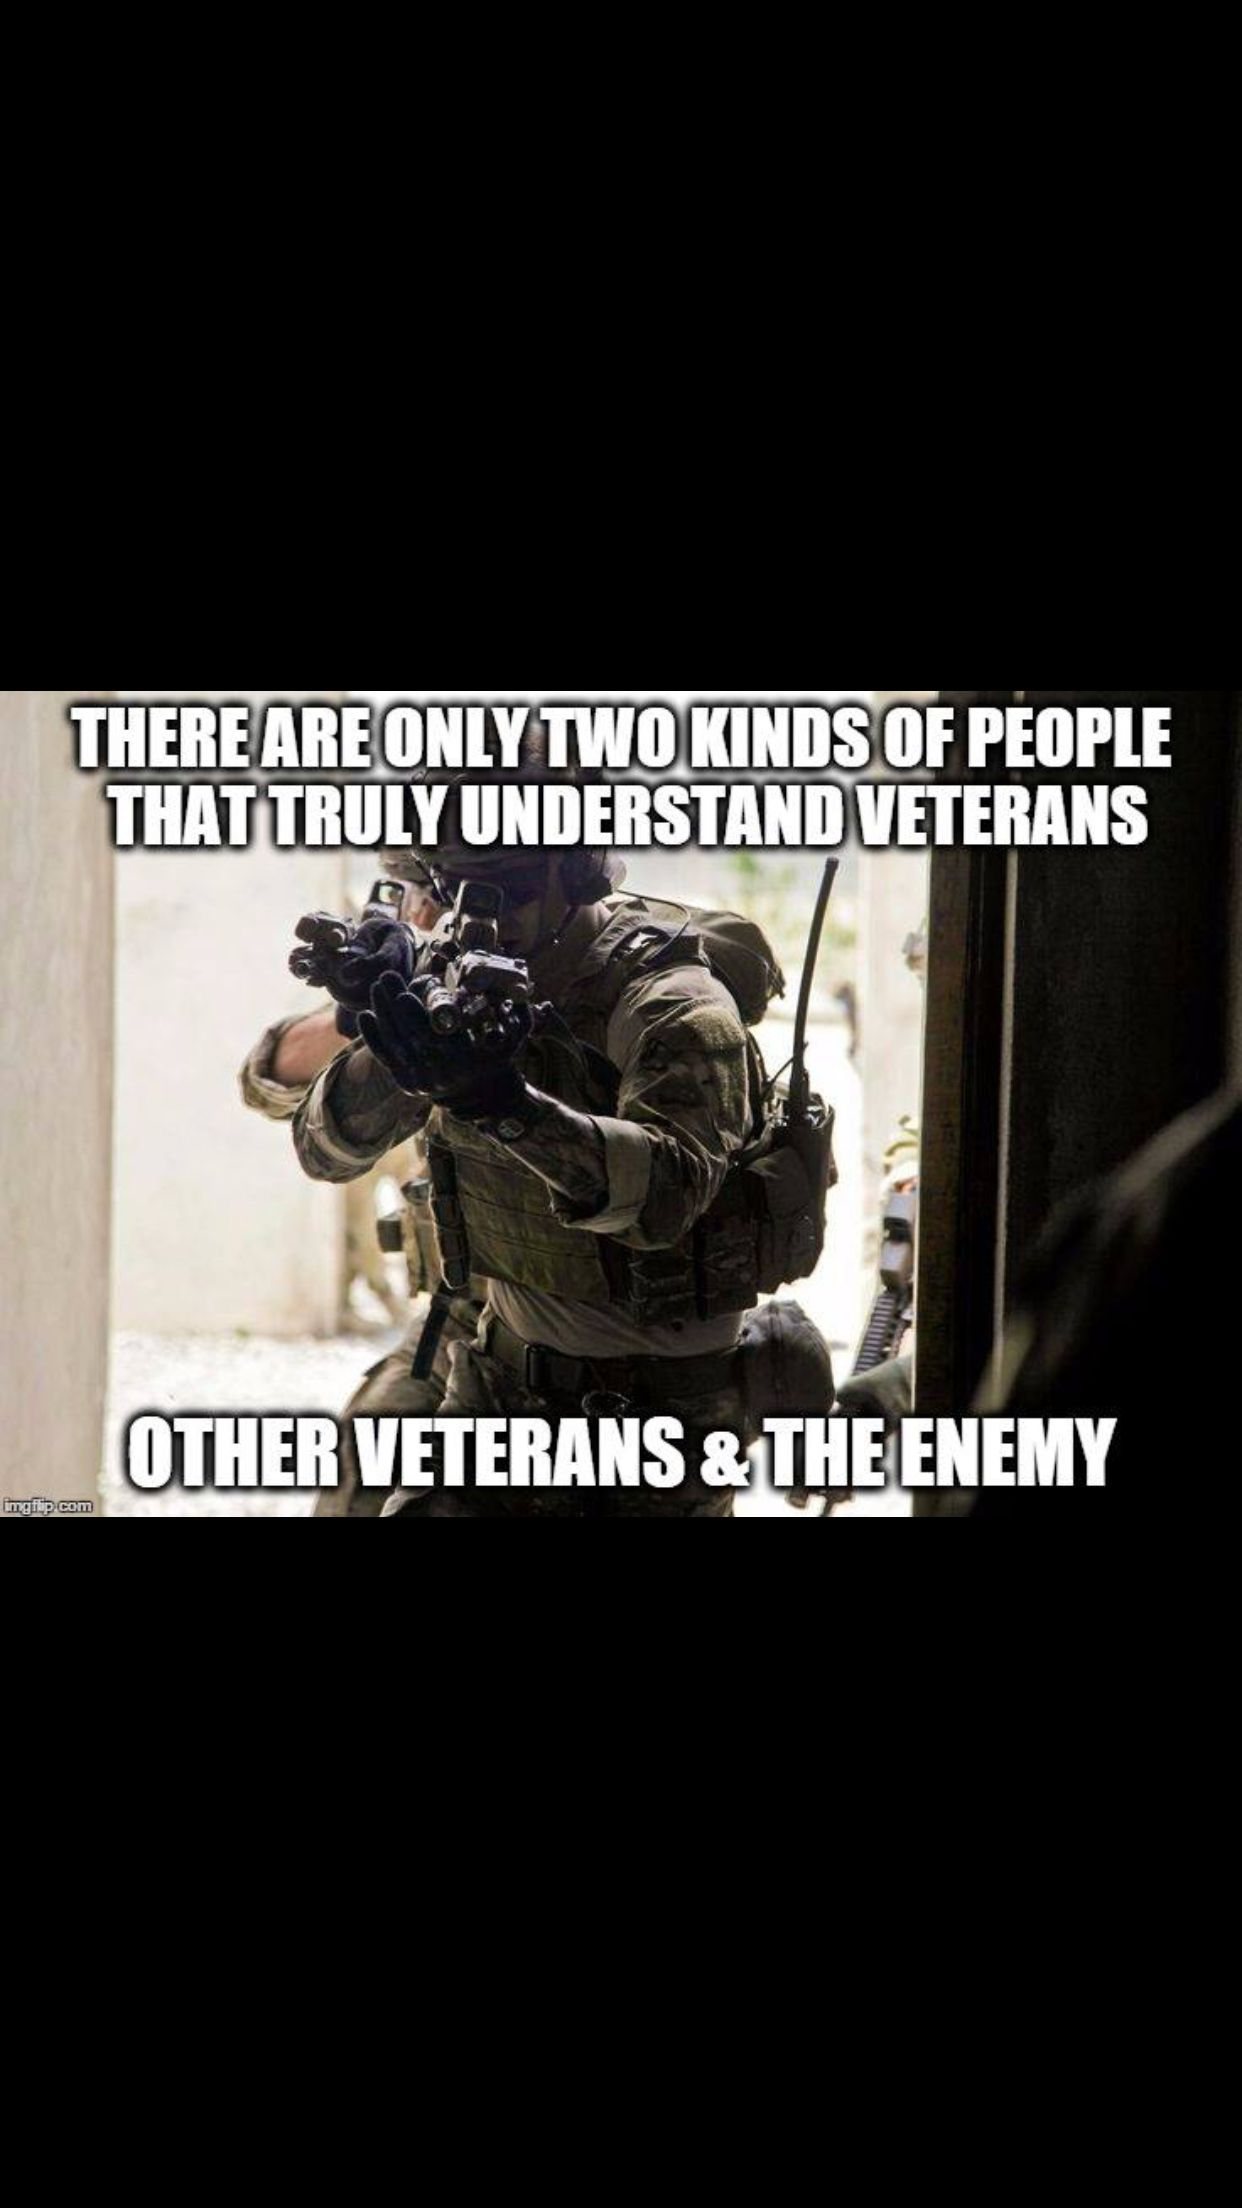 Pin by Name Redacted on Military Memes   Military quotes ...